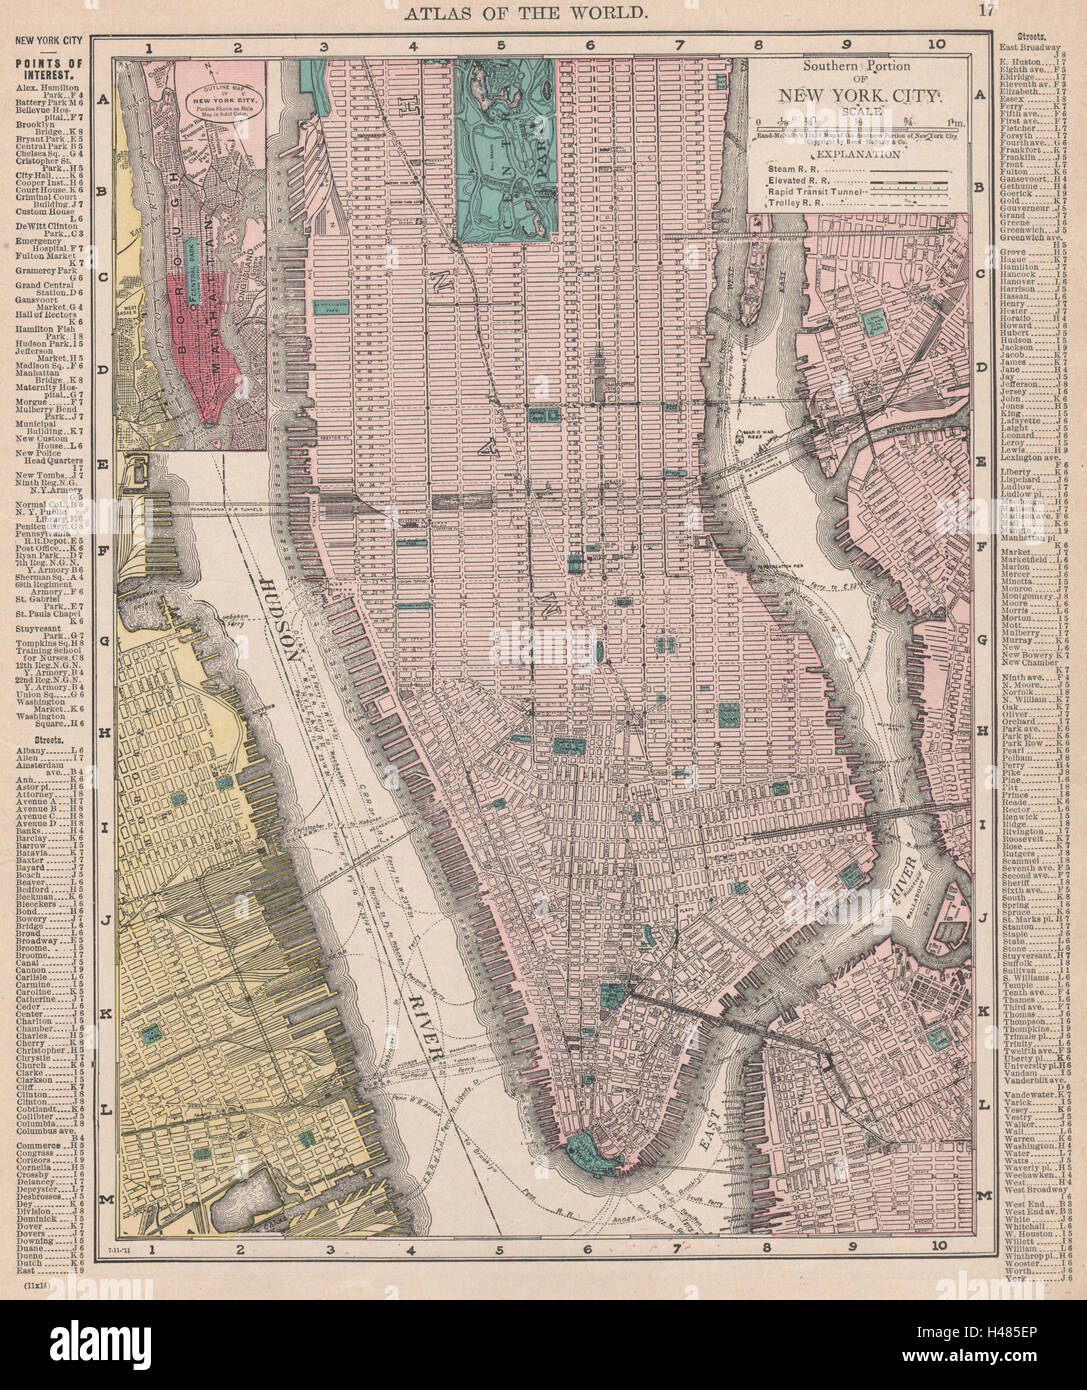 Map Of Old New York.Old New York City Map Stock Photos Old New York City Map Stock